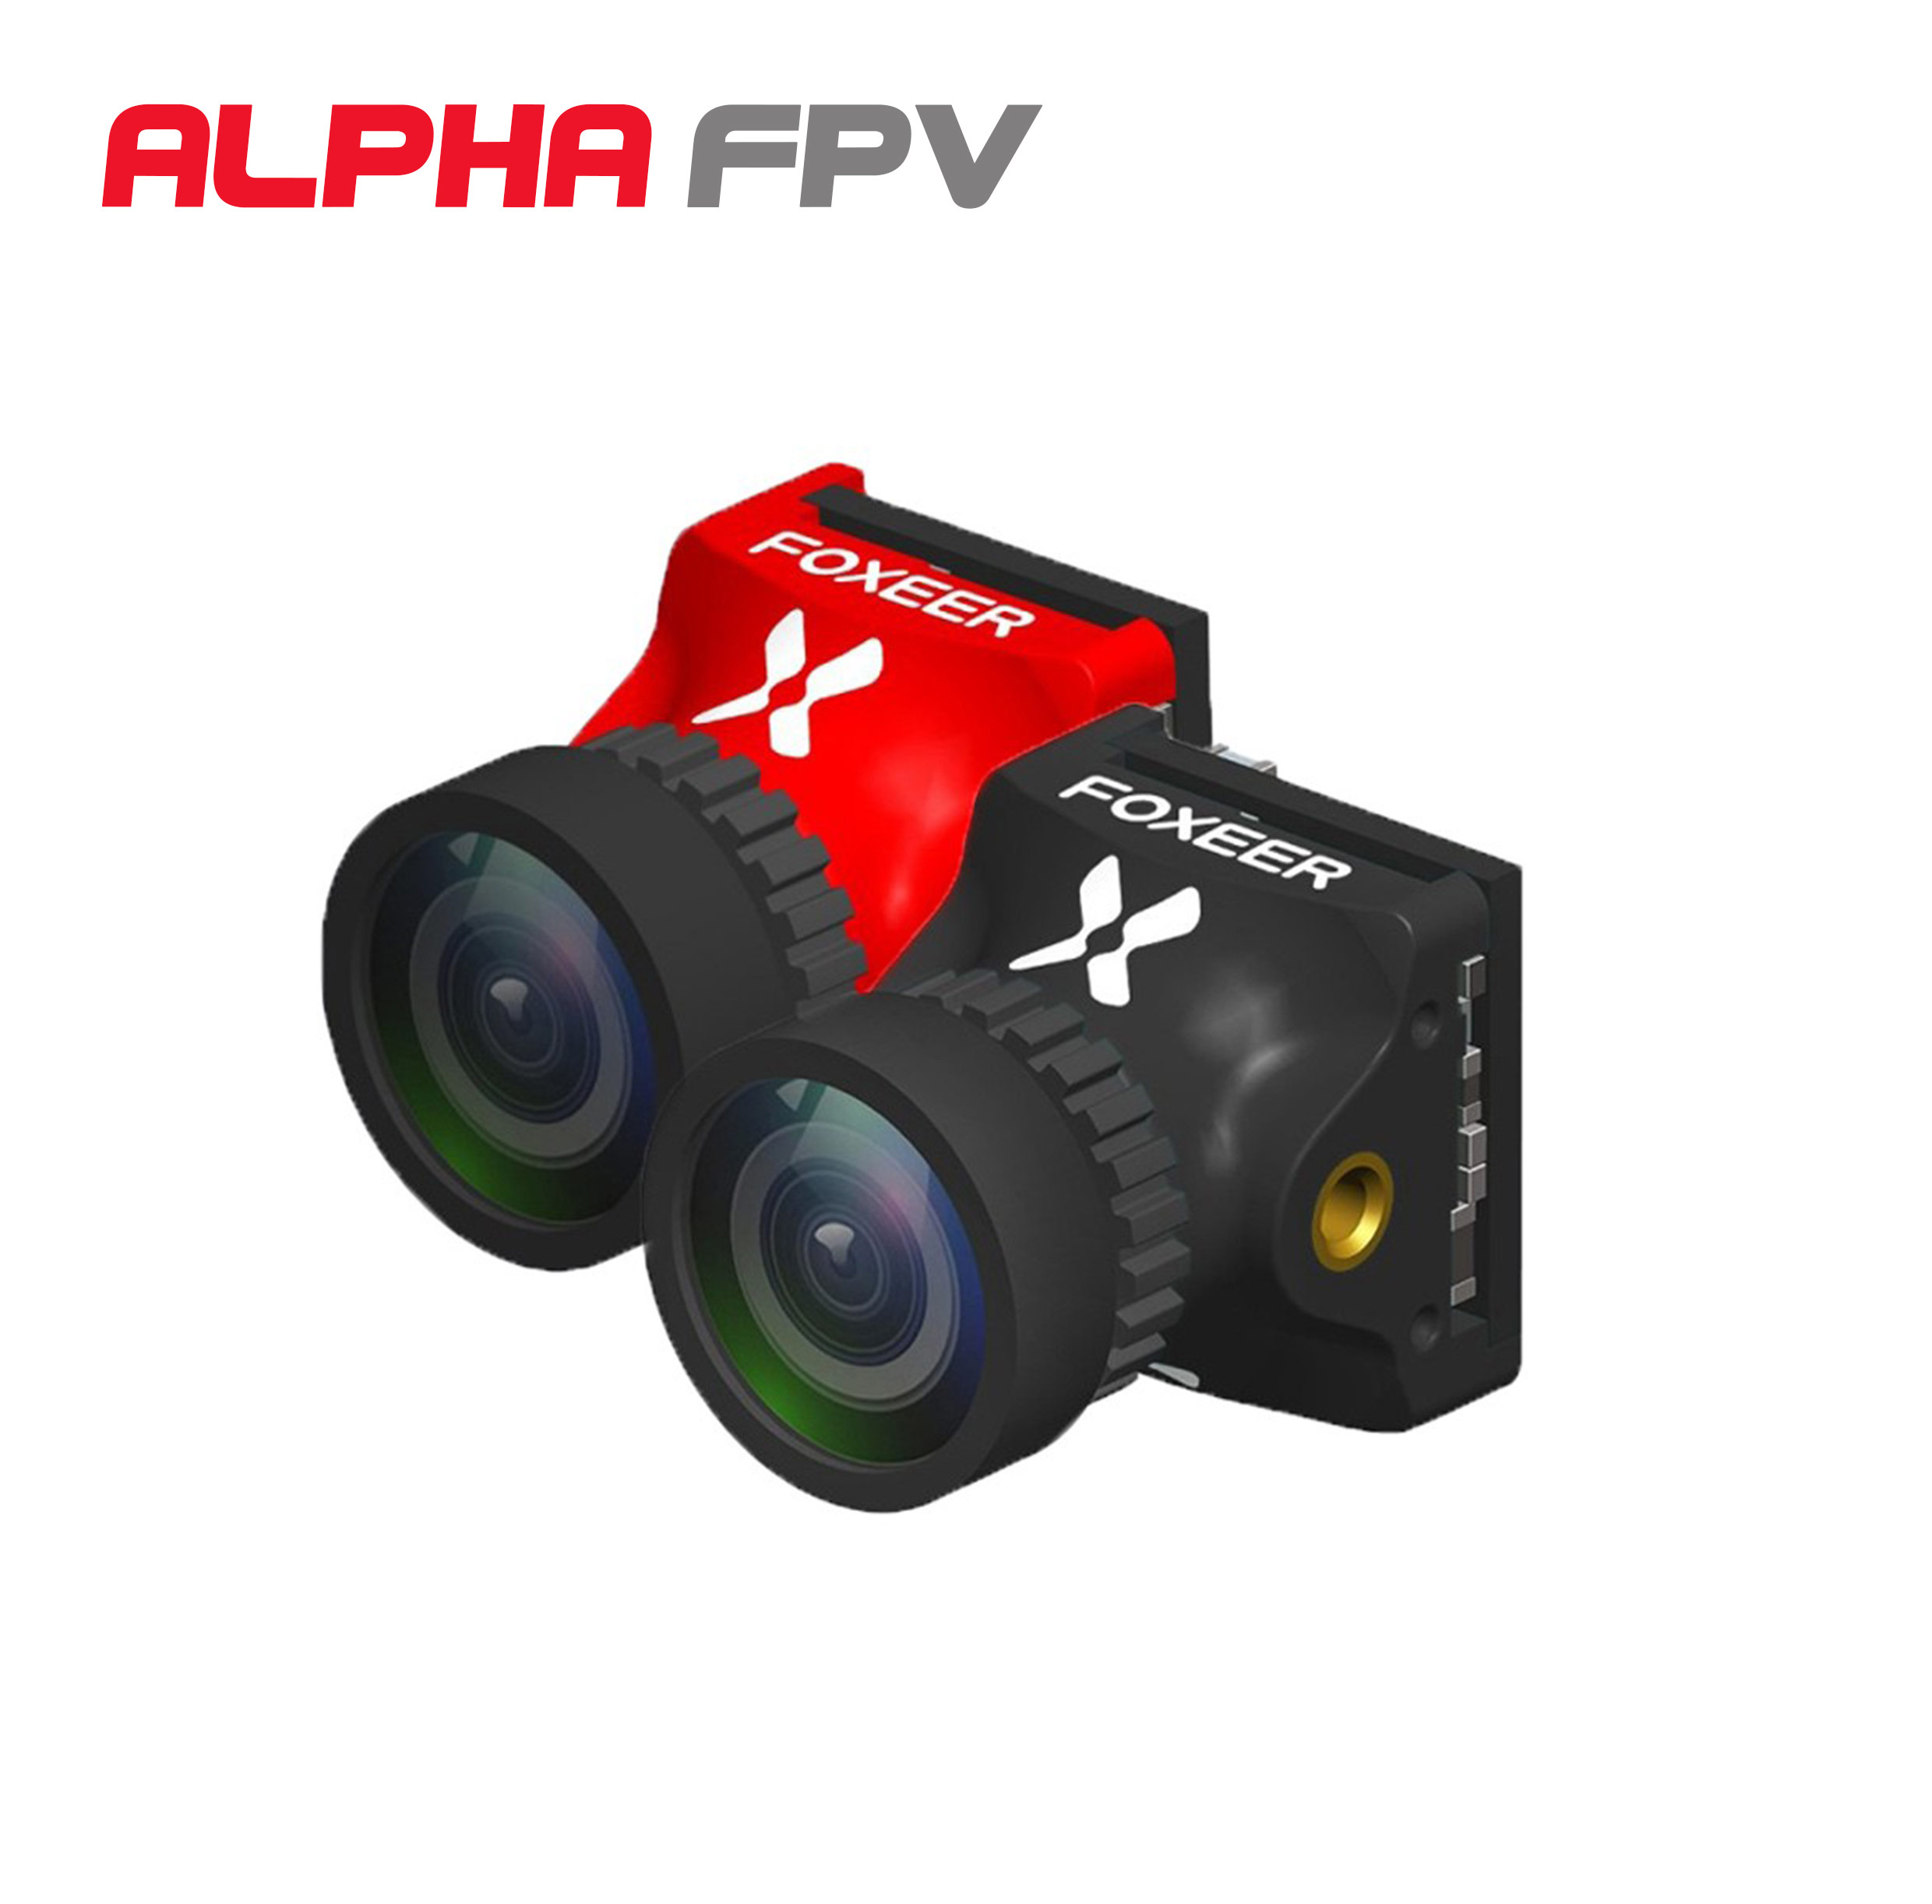 Foxeer Digisight 720P Digital FPV camera compatible with Shark Byte 1000TVL Analog Switchable 4ms Latency Super WDR 1/3